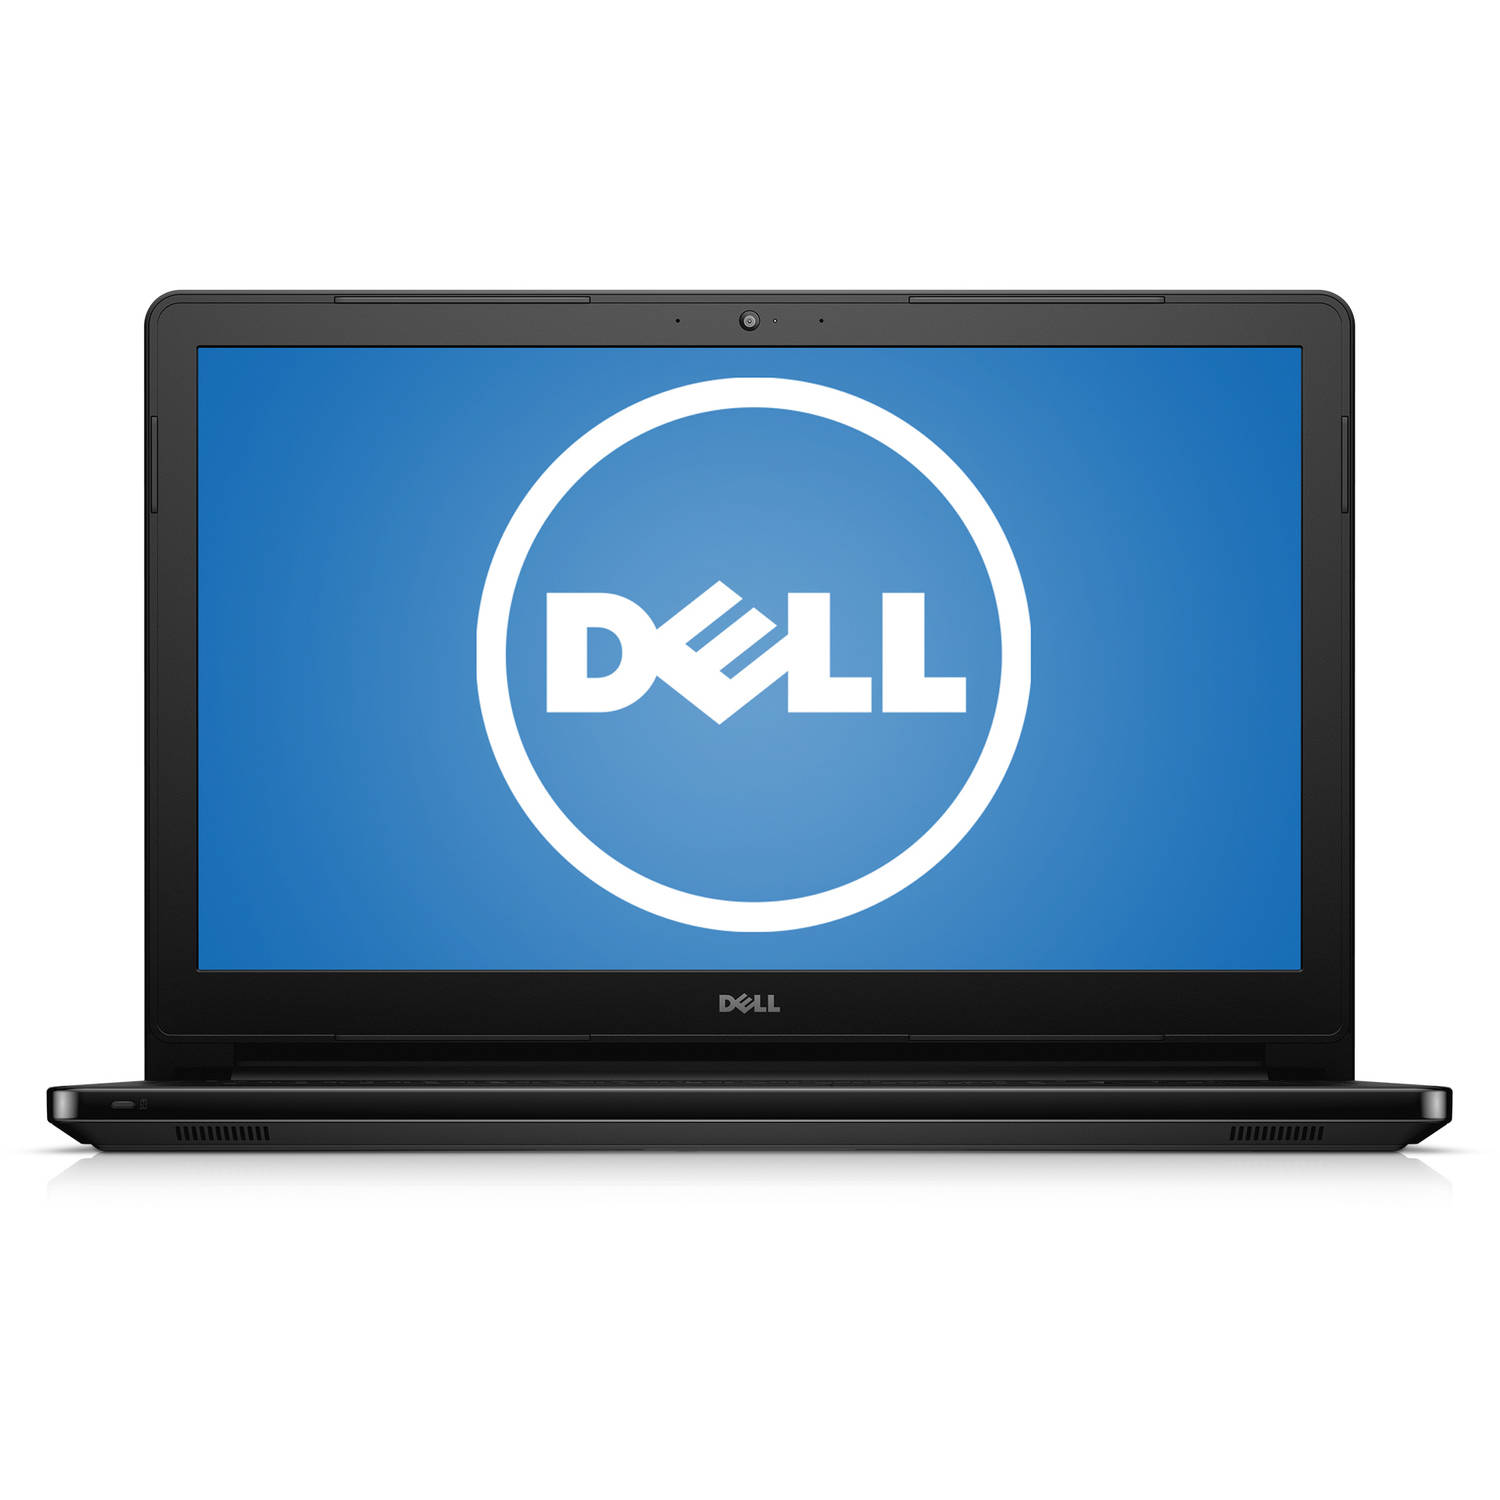 "Dell Black 15.6"" Inspiron i5551-1667BLK Laptop PC with Intel Pentium N3540 Processor, 4GB Memory, 500GB Hard Drive and Windows 8.1  (Free Windows 10 Upgrade before July 29, 2016)"